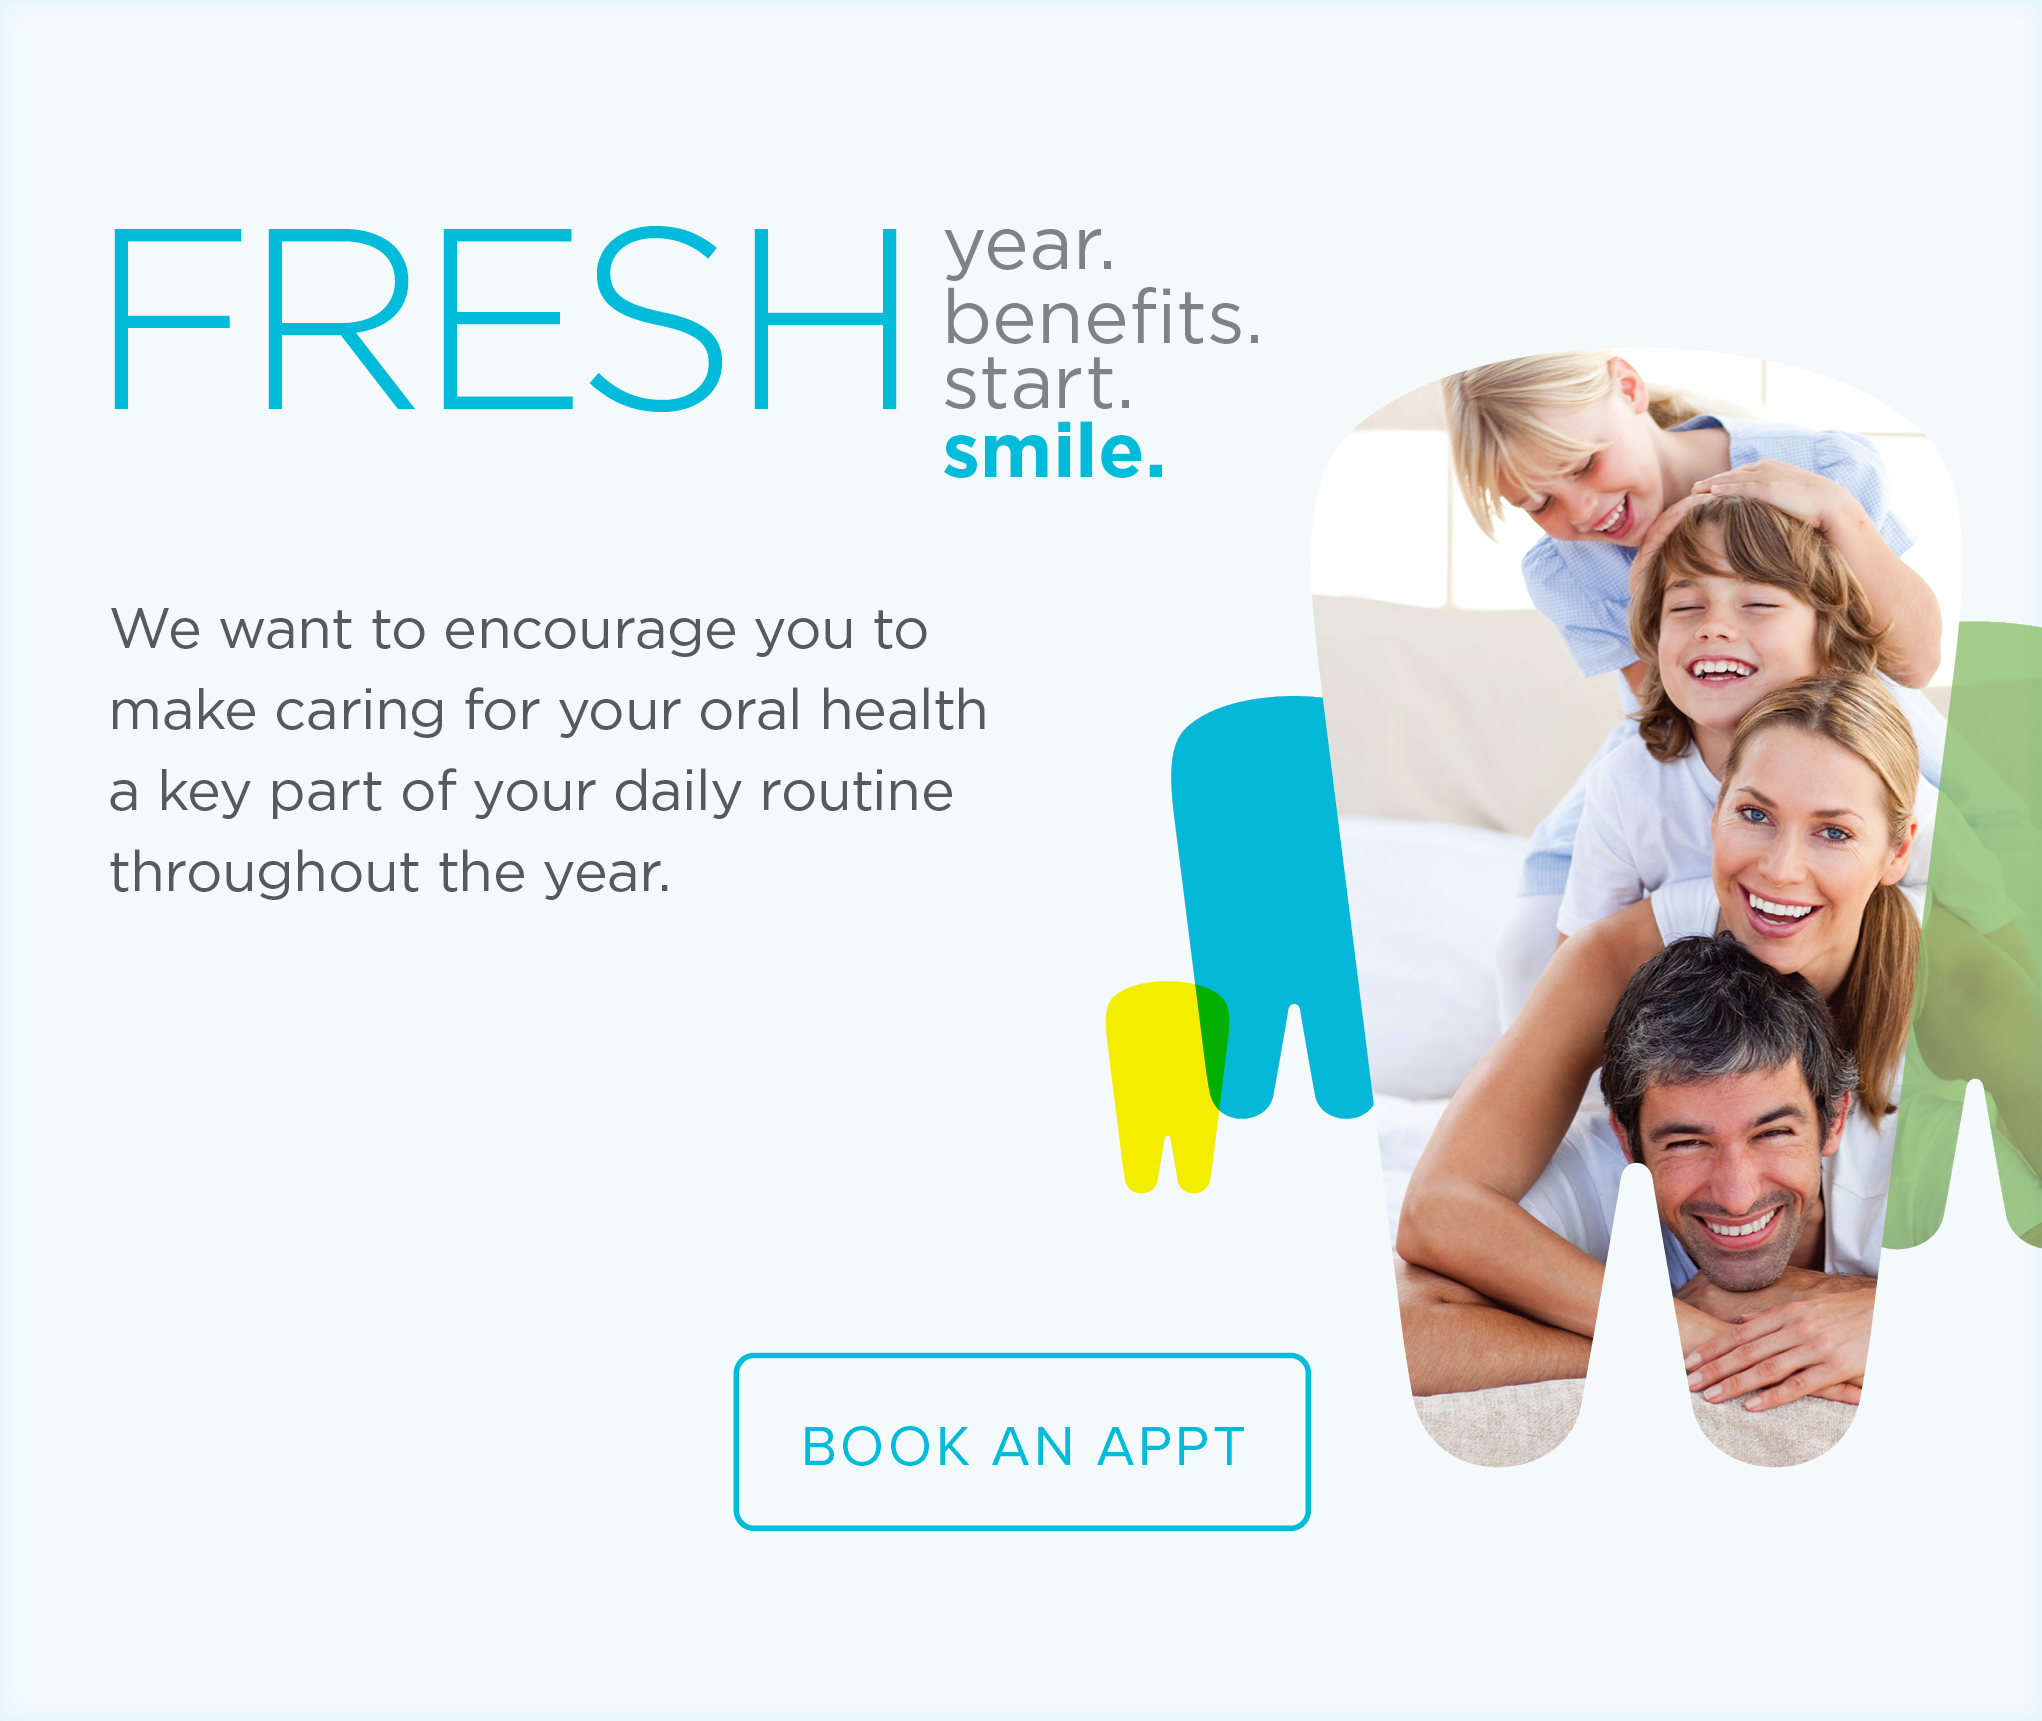 Grand Lakes Dental Group and Orthodontics - Make the Most of Your Benefits